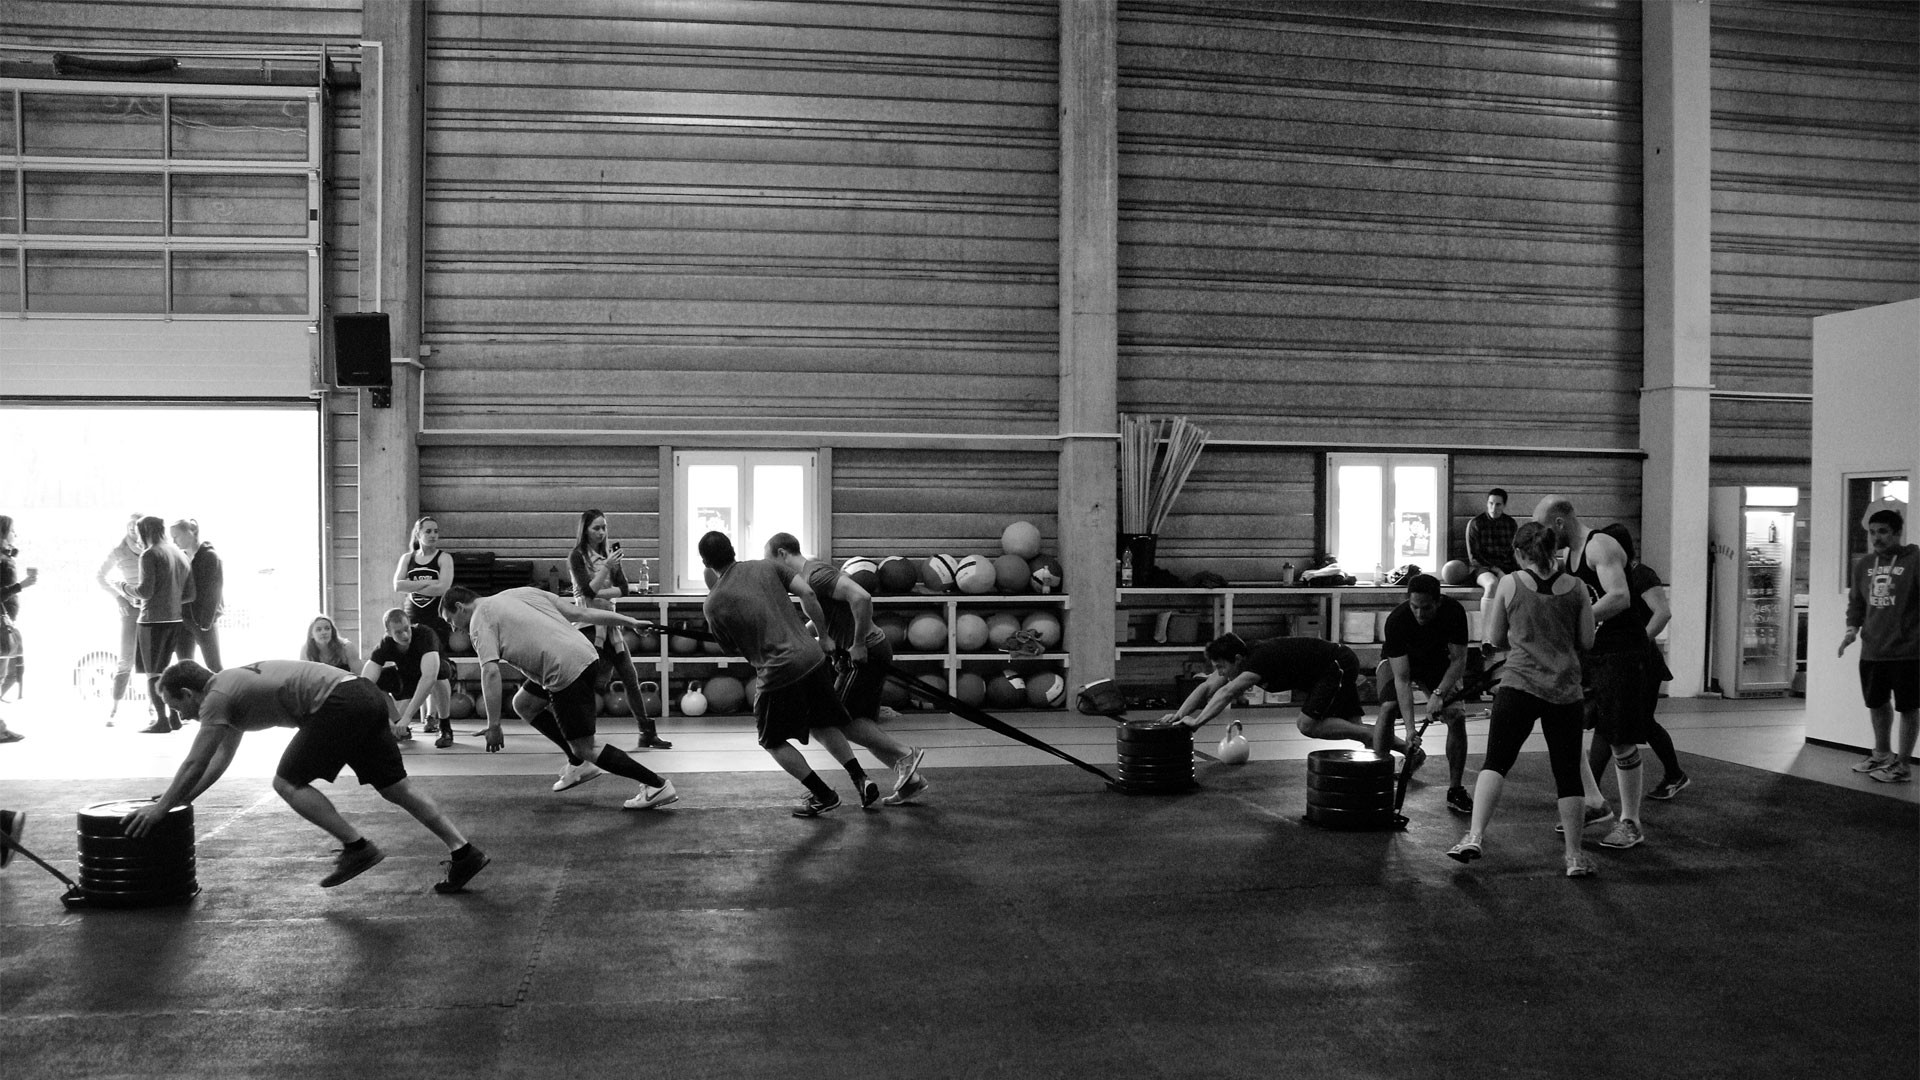 Crossfit Wallpapers 67 images 1920x1080